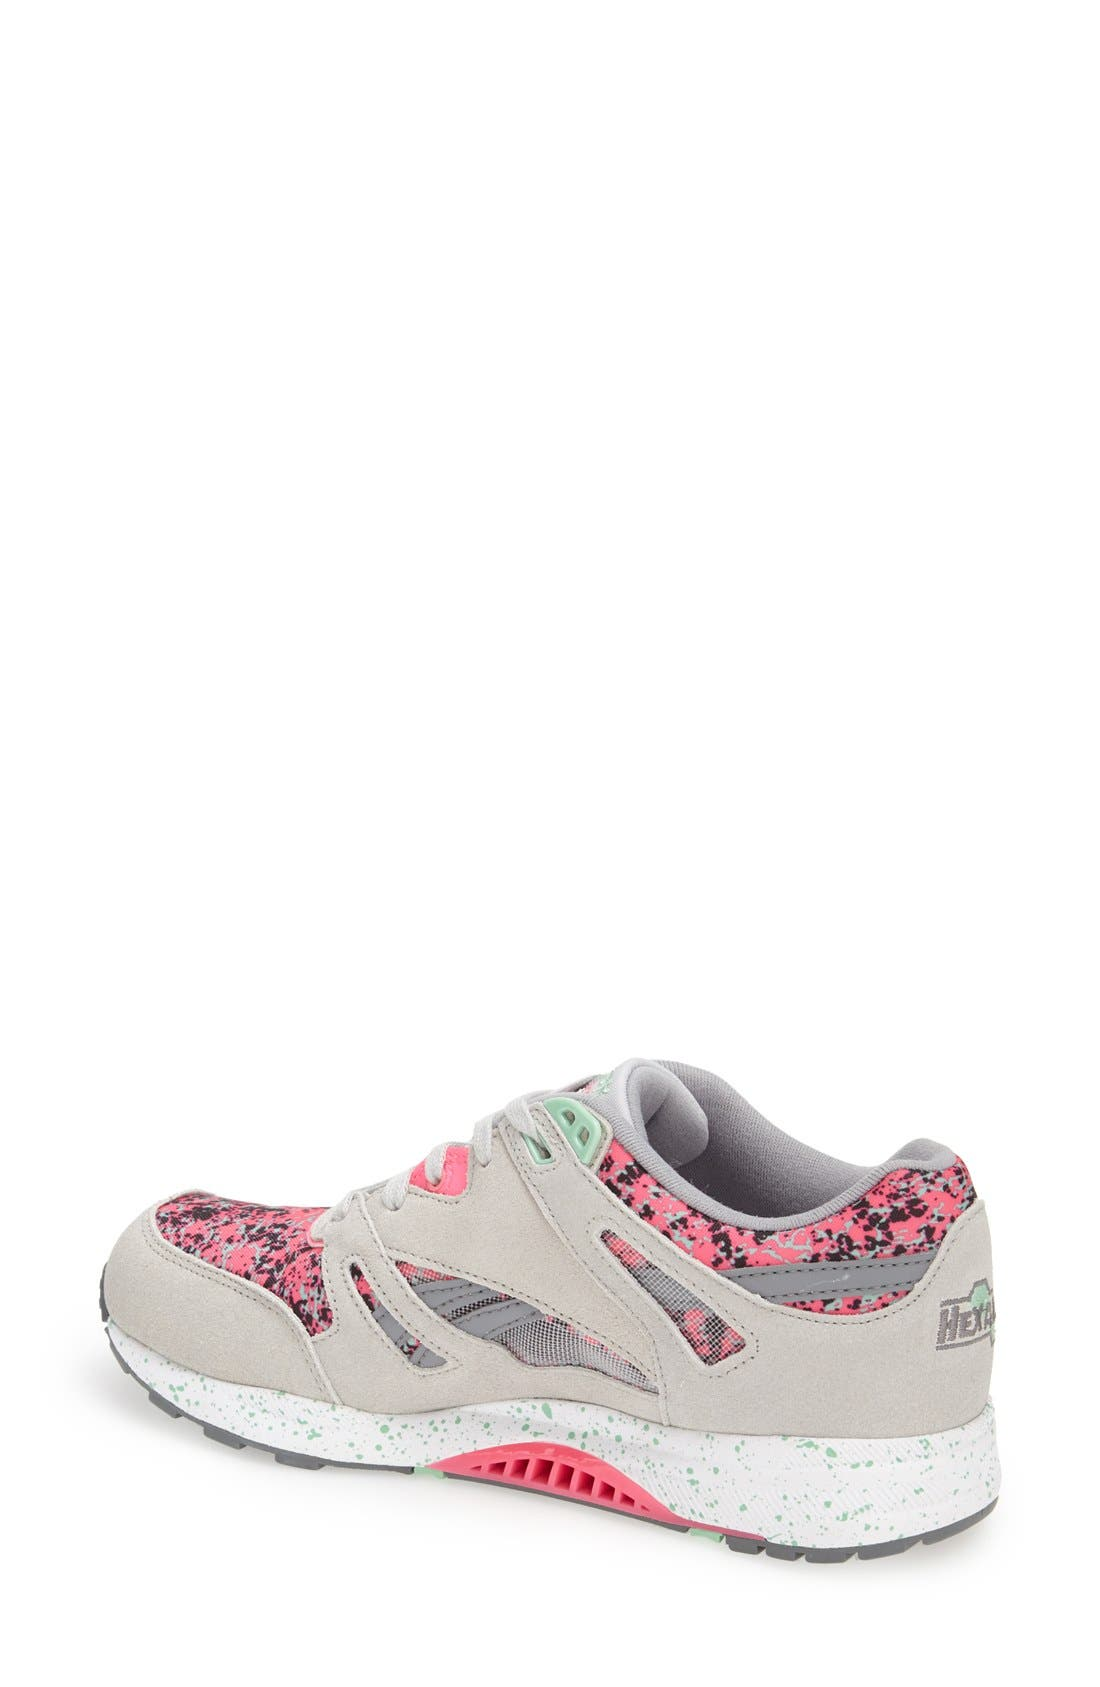 Alternate Image 2  - Reebok 'Ventilator CC' Sneaker (Women)